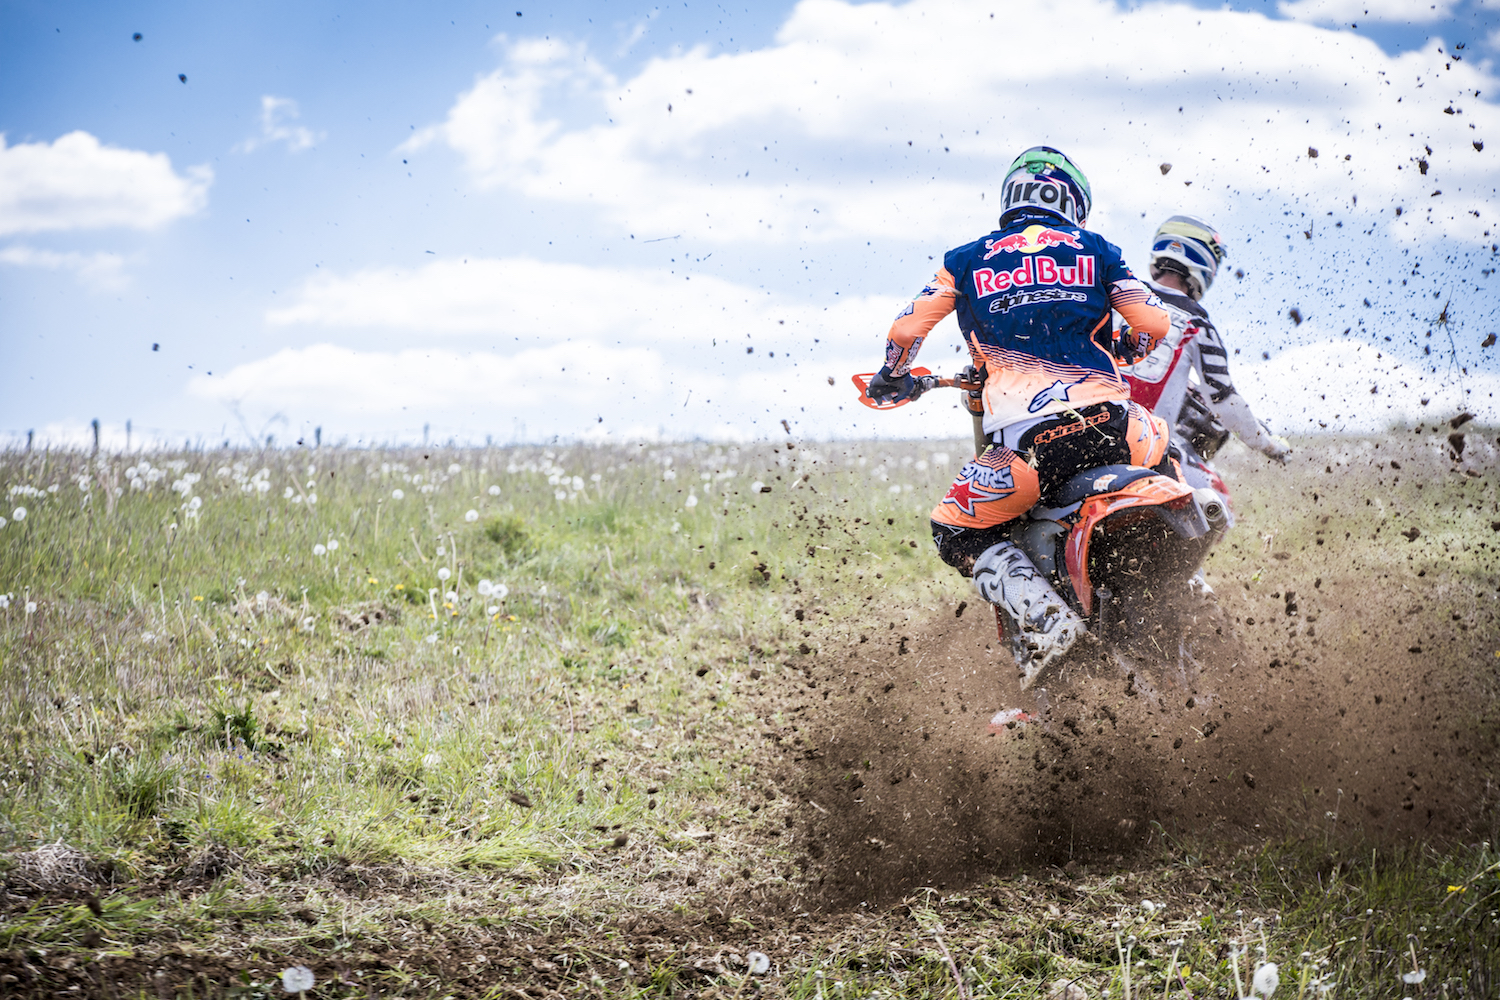 Antoine MEO – Red Bull Motor Sport Athlete